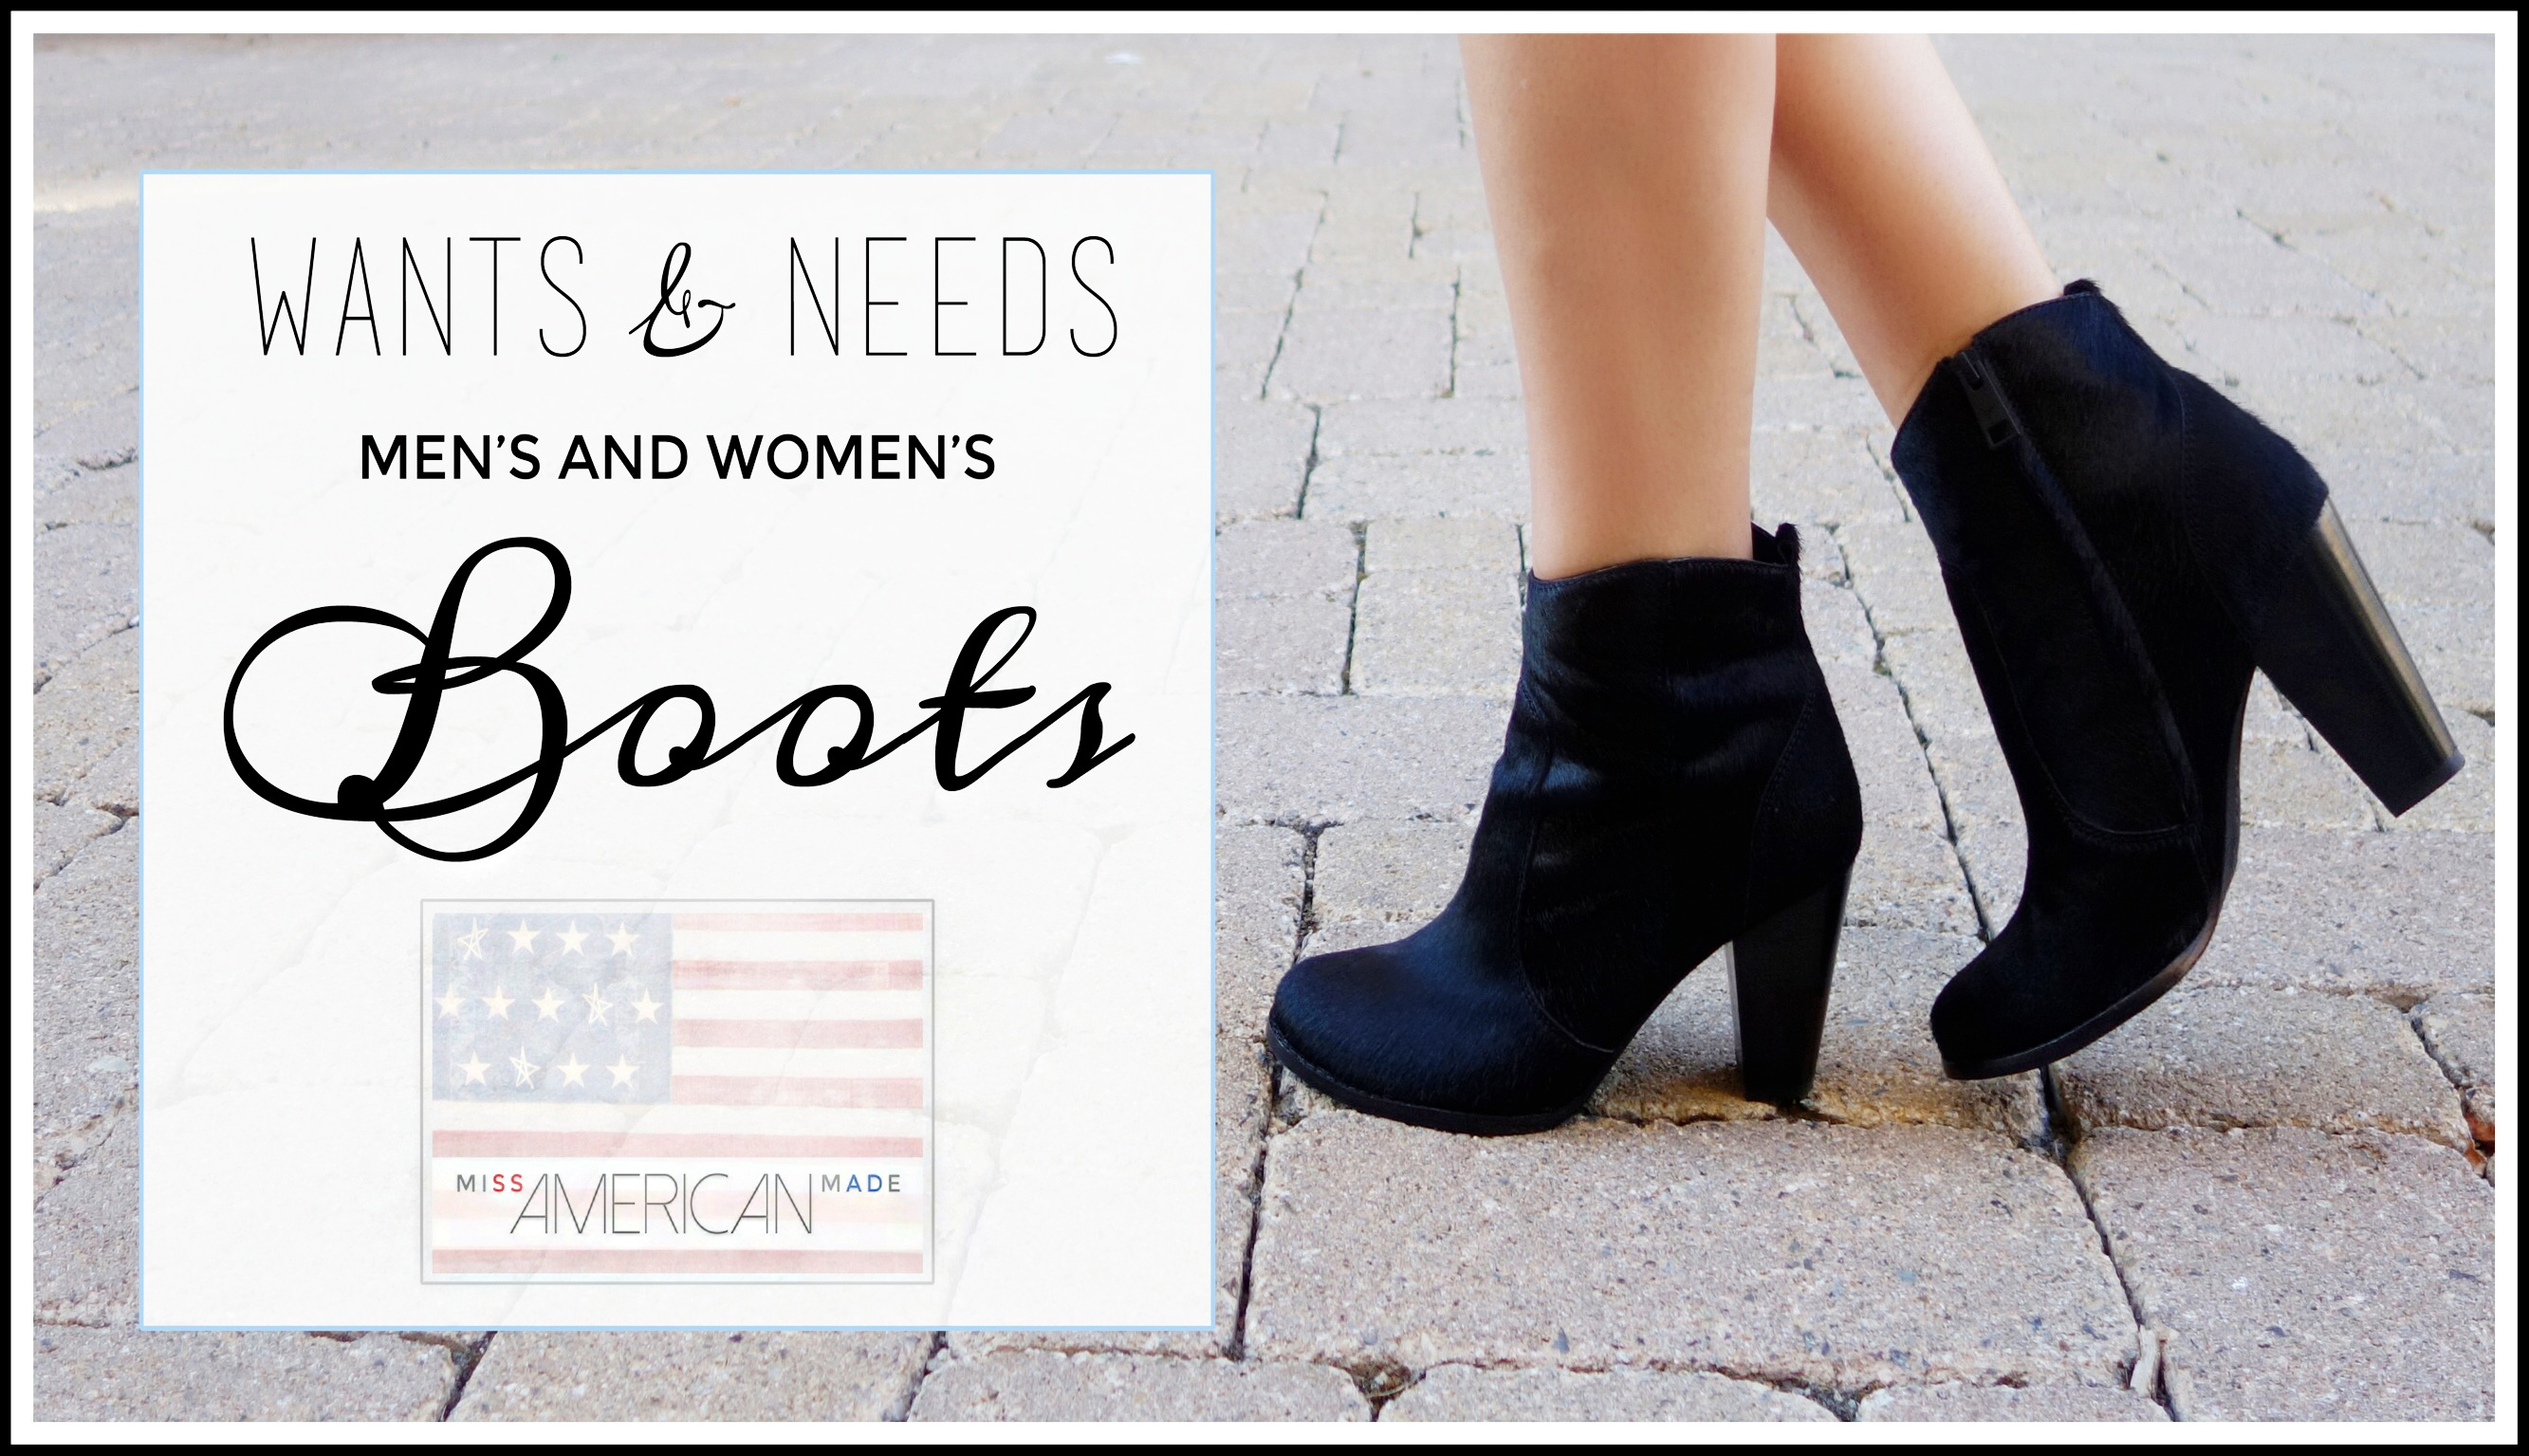 Weekly wants and needs! A list of boots made in America! The American Made boot game is SERIOUS!